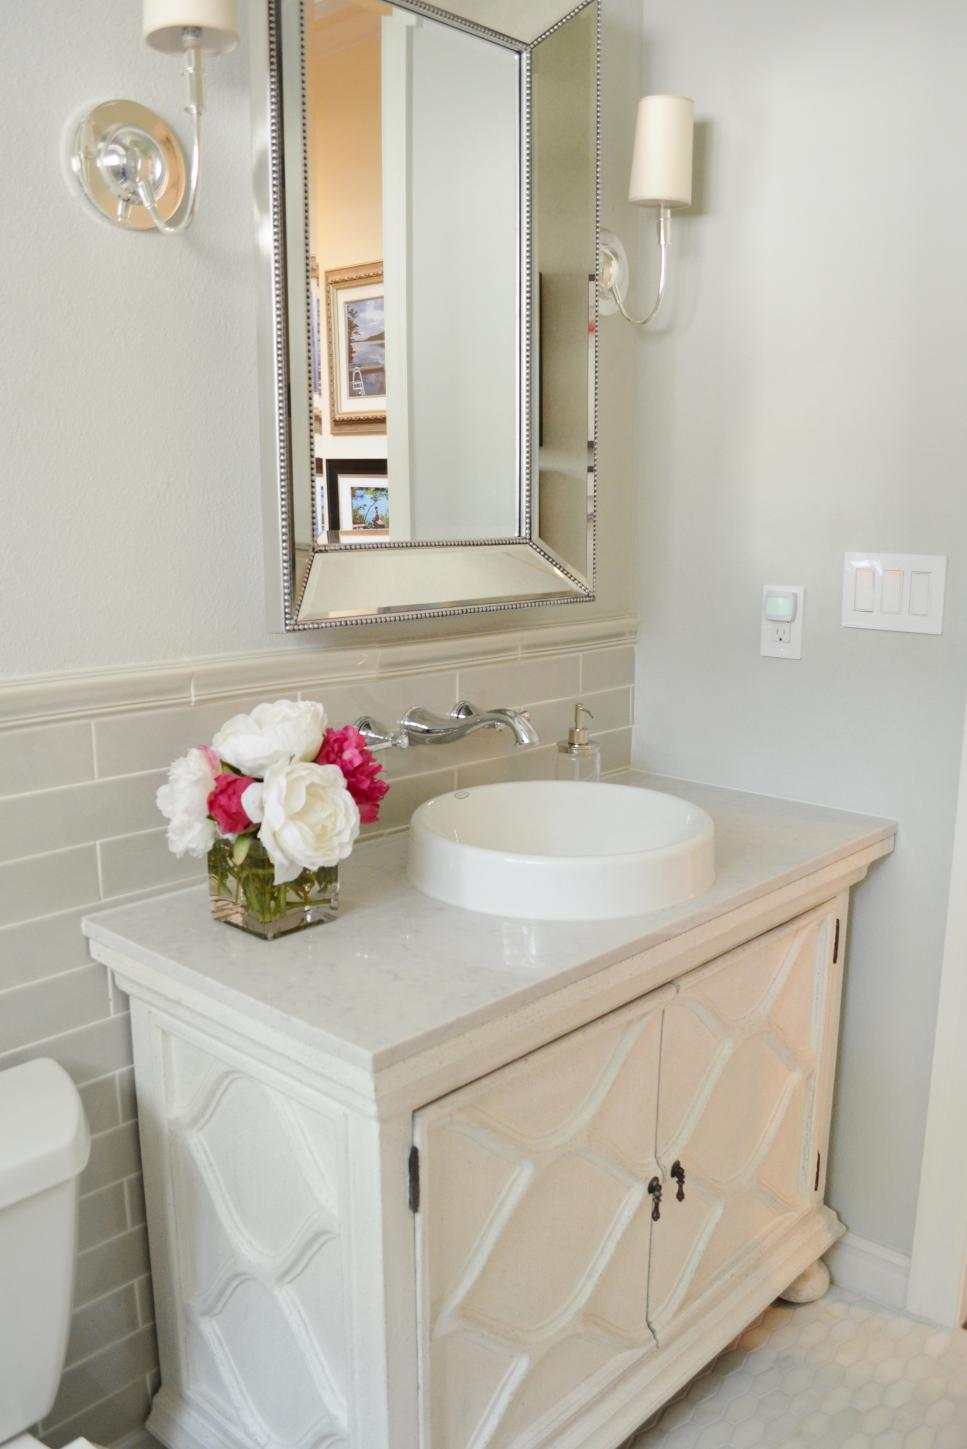 before-and-after bathroom remodels on a budget   hgtv FXBNYEH